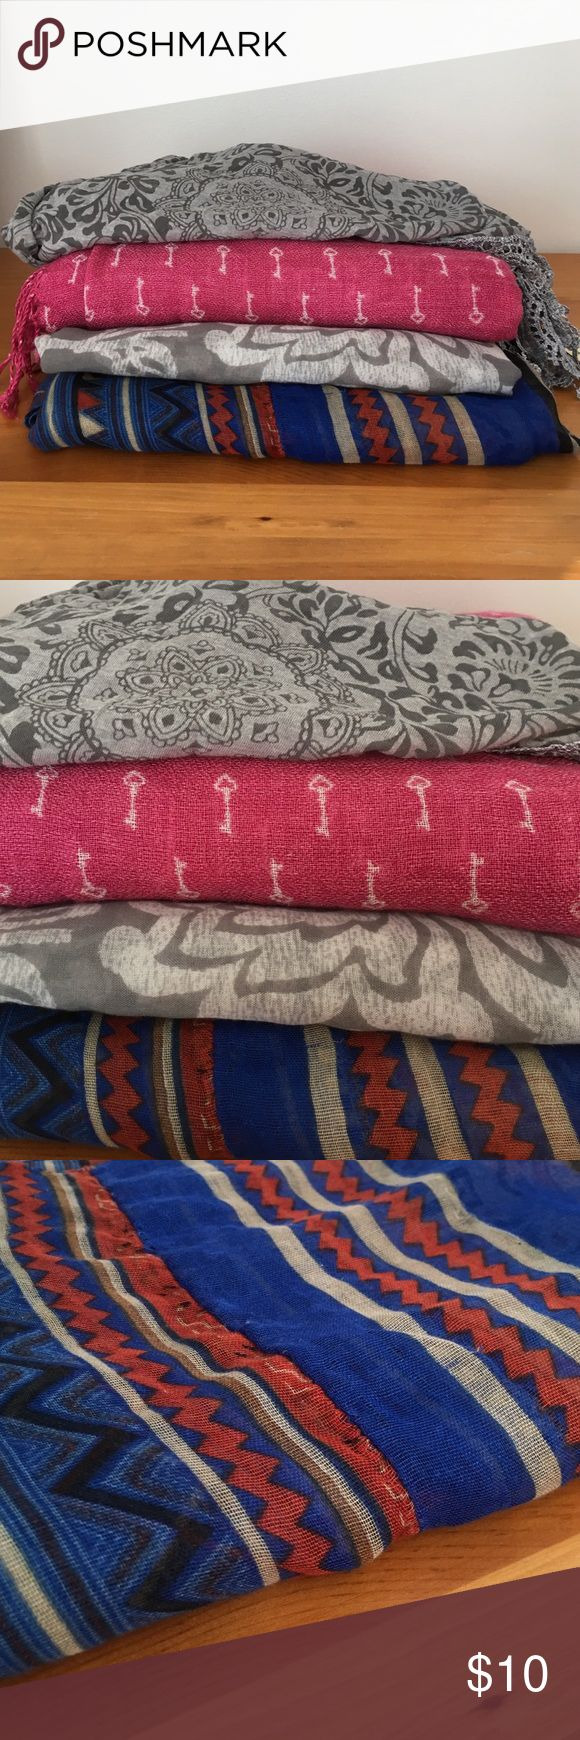 Scarf bundle - make an offer! Bundle of 4 lightweight scarves in various colors. Gray floral and blue Aztec scarves are infinity style, pink key scarf has tassels on the ends, gray kerchief-style scarf is NWT. All in good condition, Aztec scarf has a few pulls that are not extremely noticeable. Accessories Scarves & Wraps